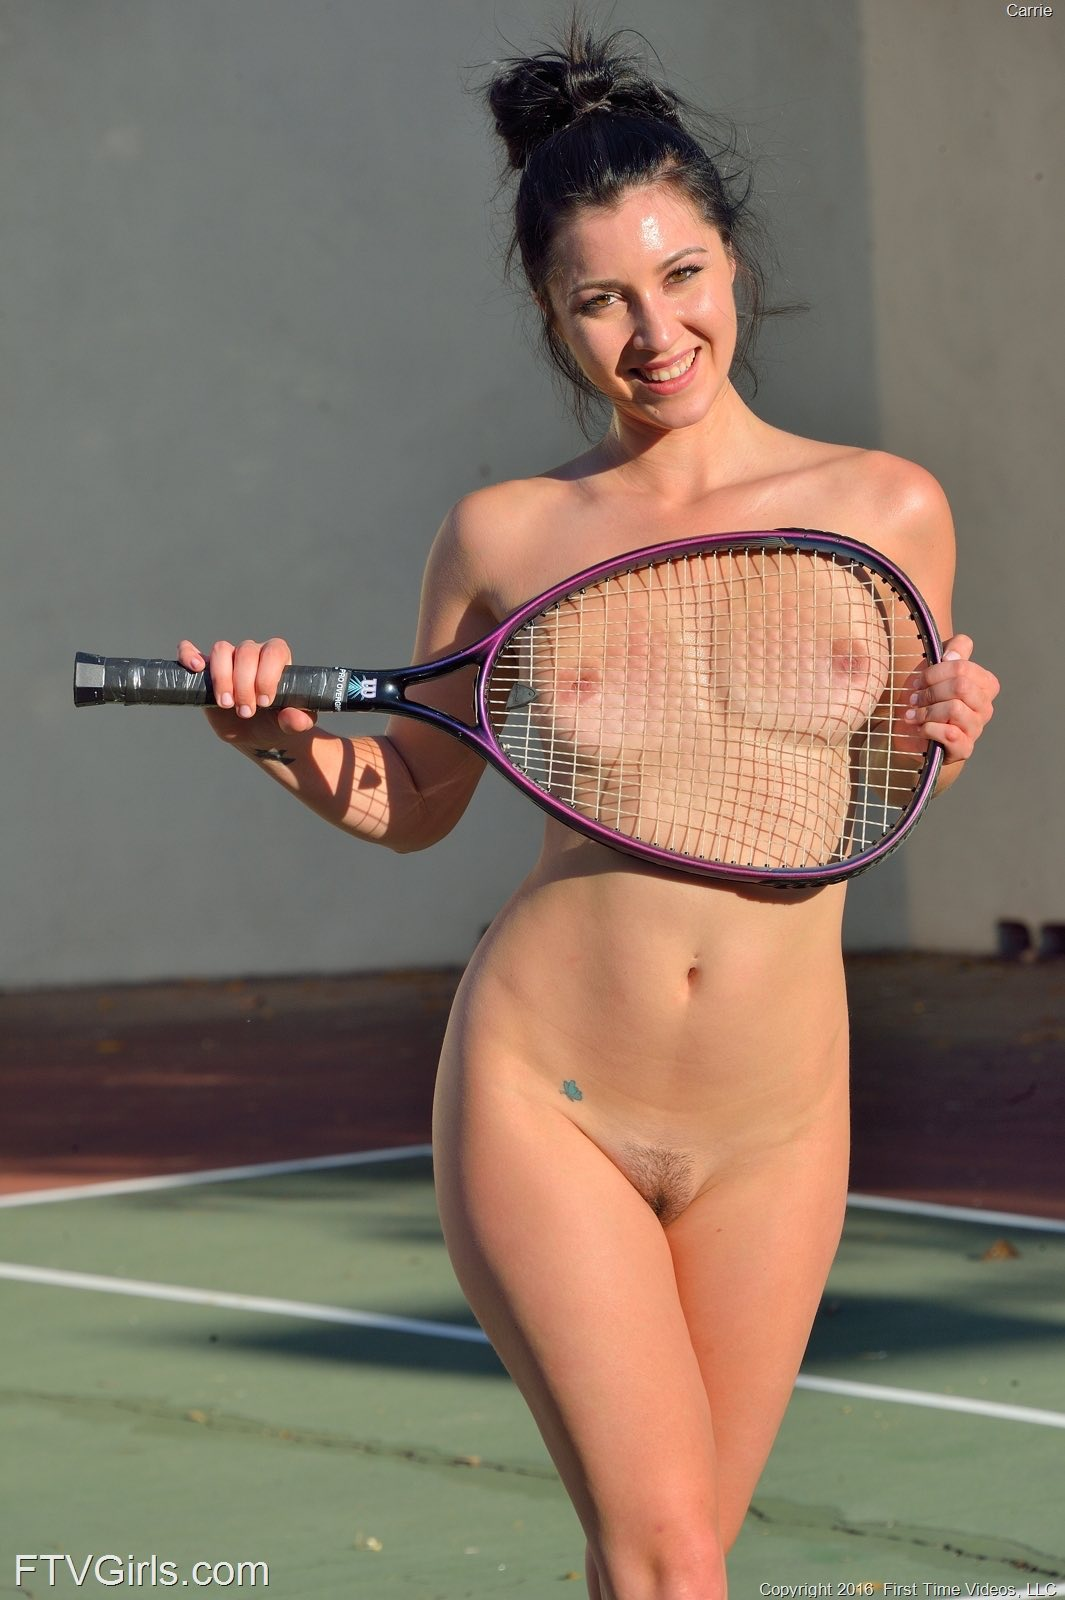 Carrie In Buttalicious Tennis By Ftv-Girls 16 Nude Photos -9897